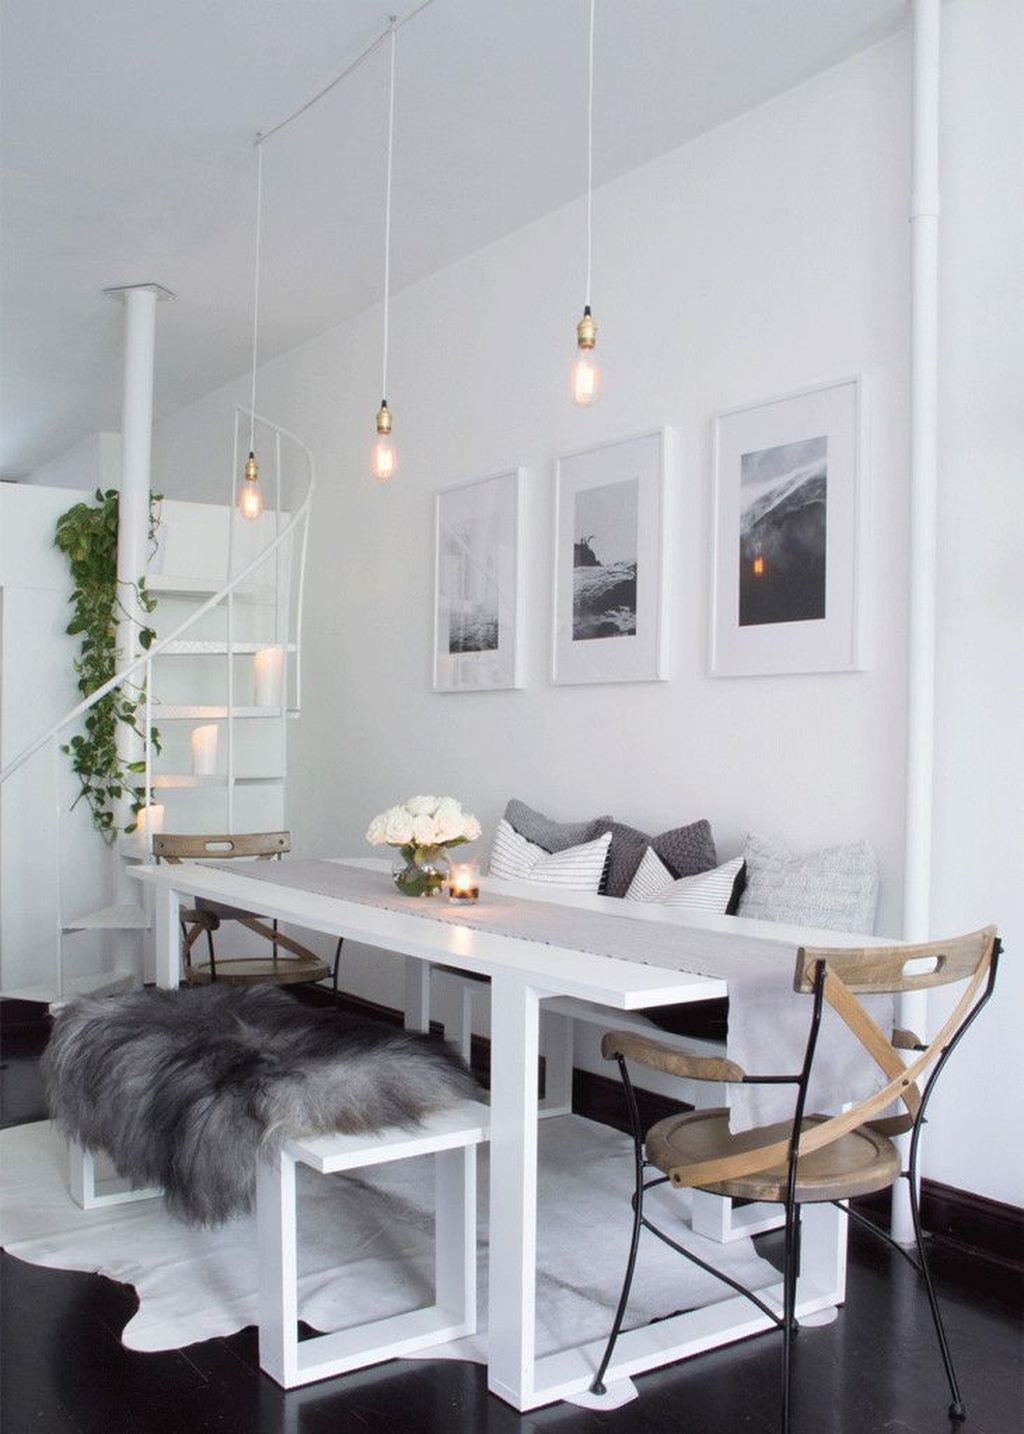 77 Amazing Scandinavian Dining Room Design Ideas With Images